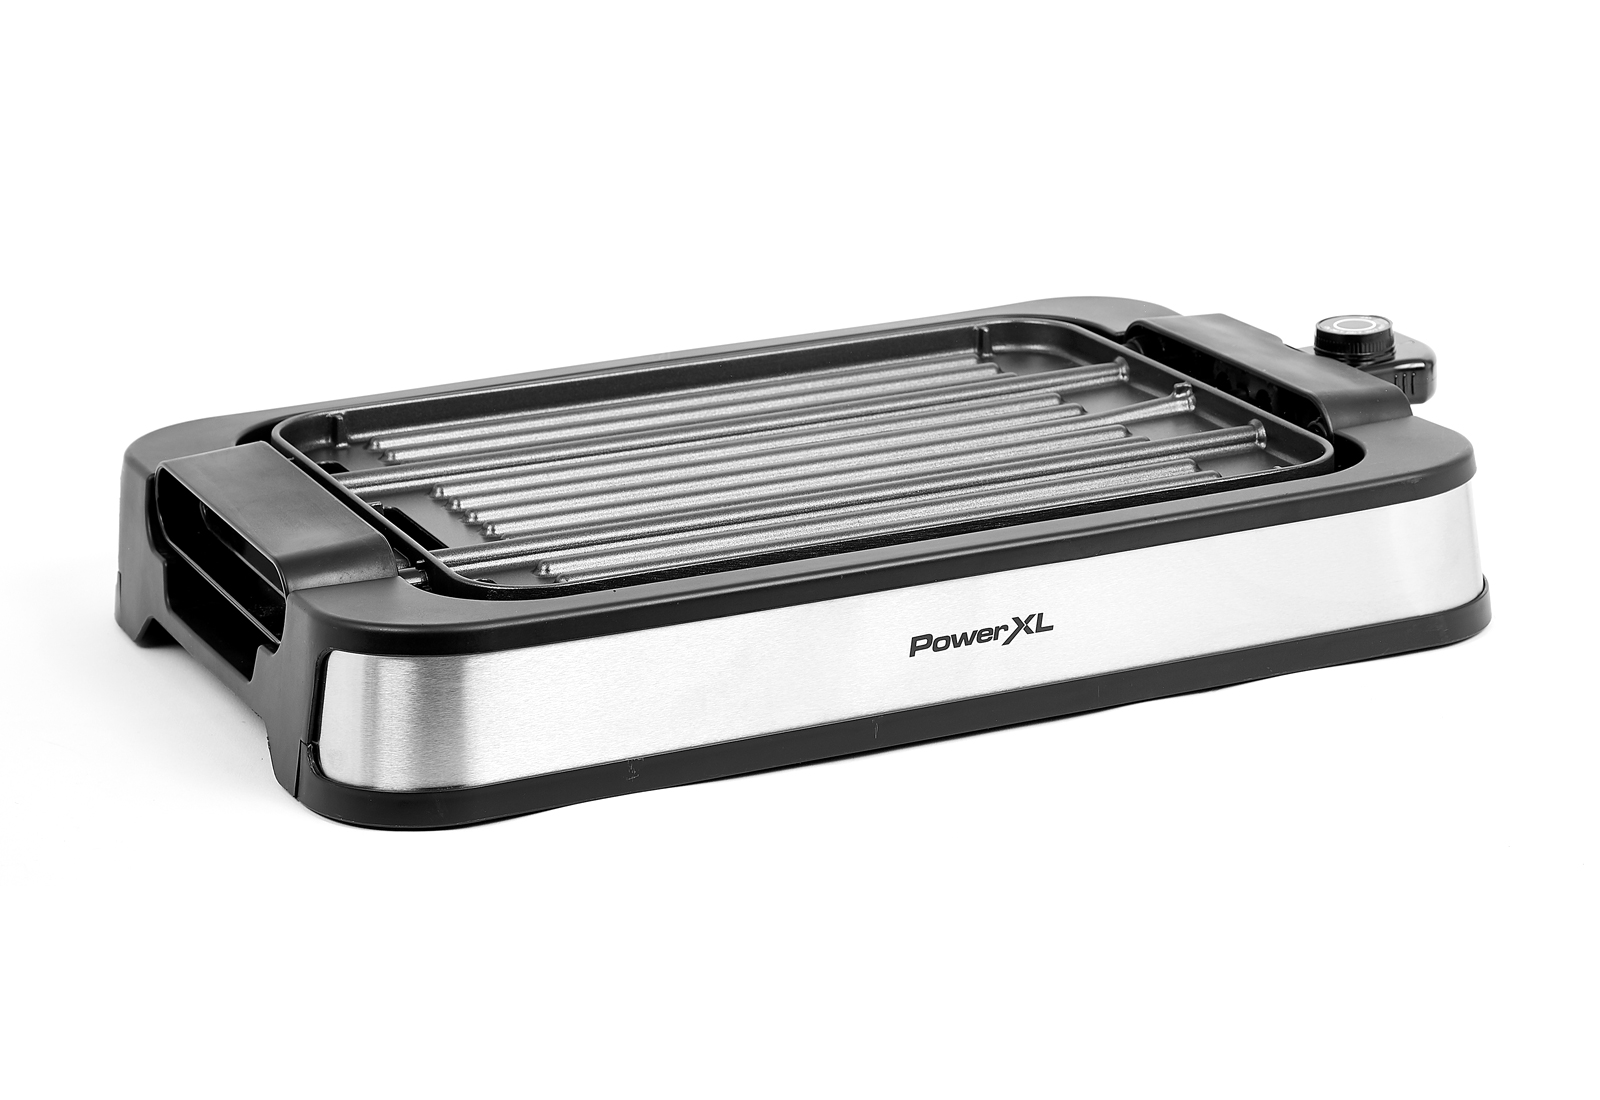 PowerXL Indoor Grill Product Image